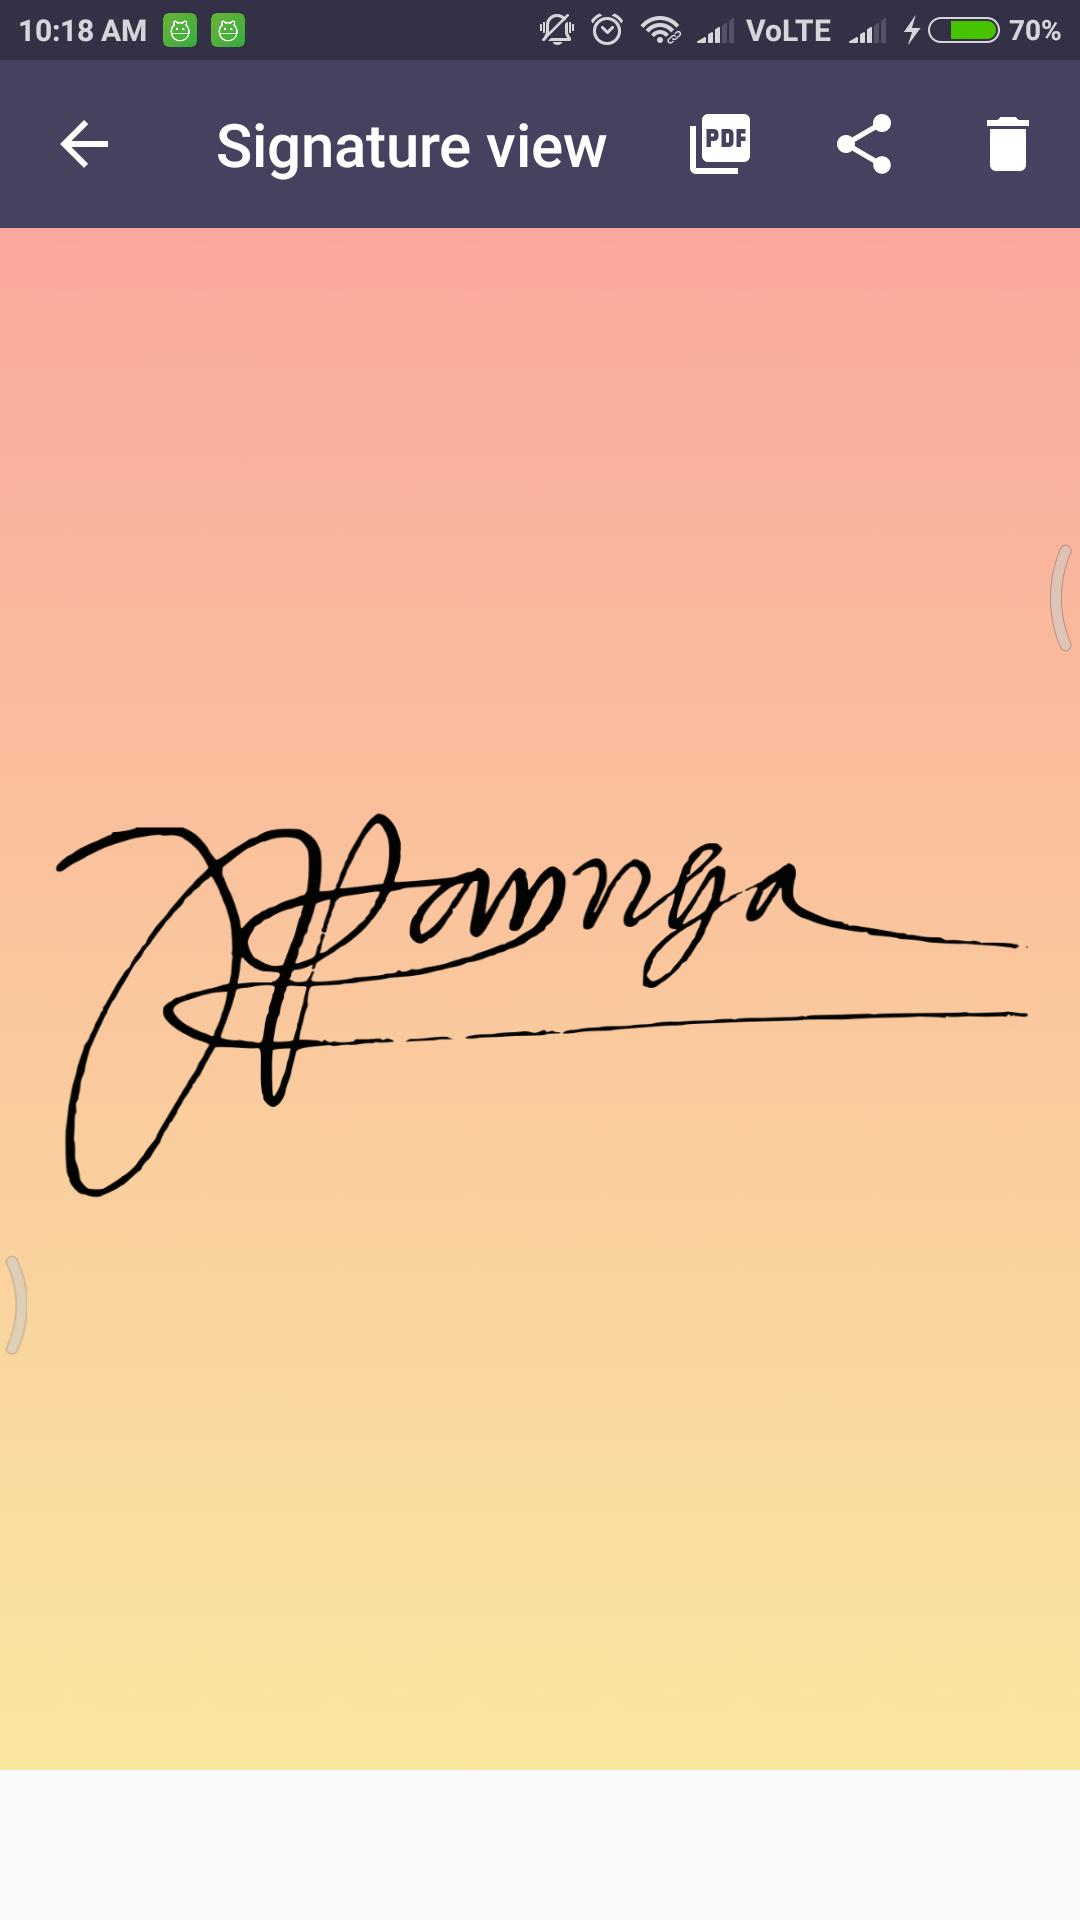 Signature Creator for Android - APK Download